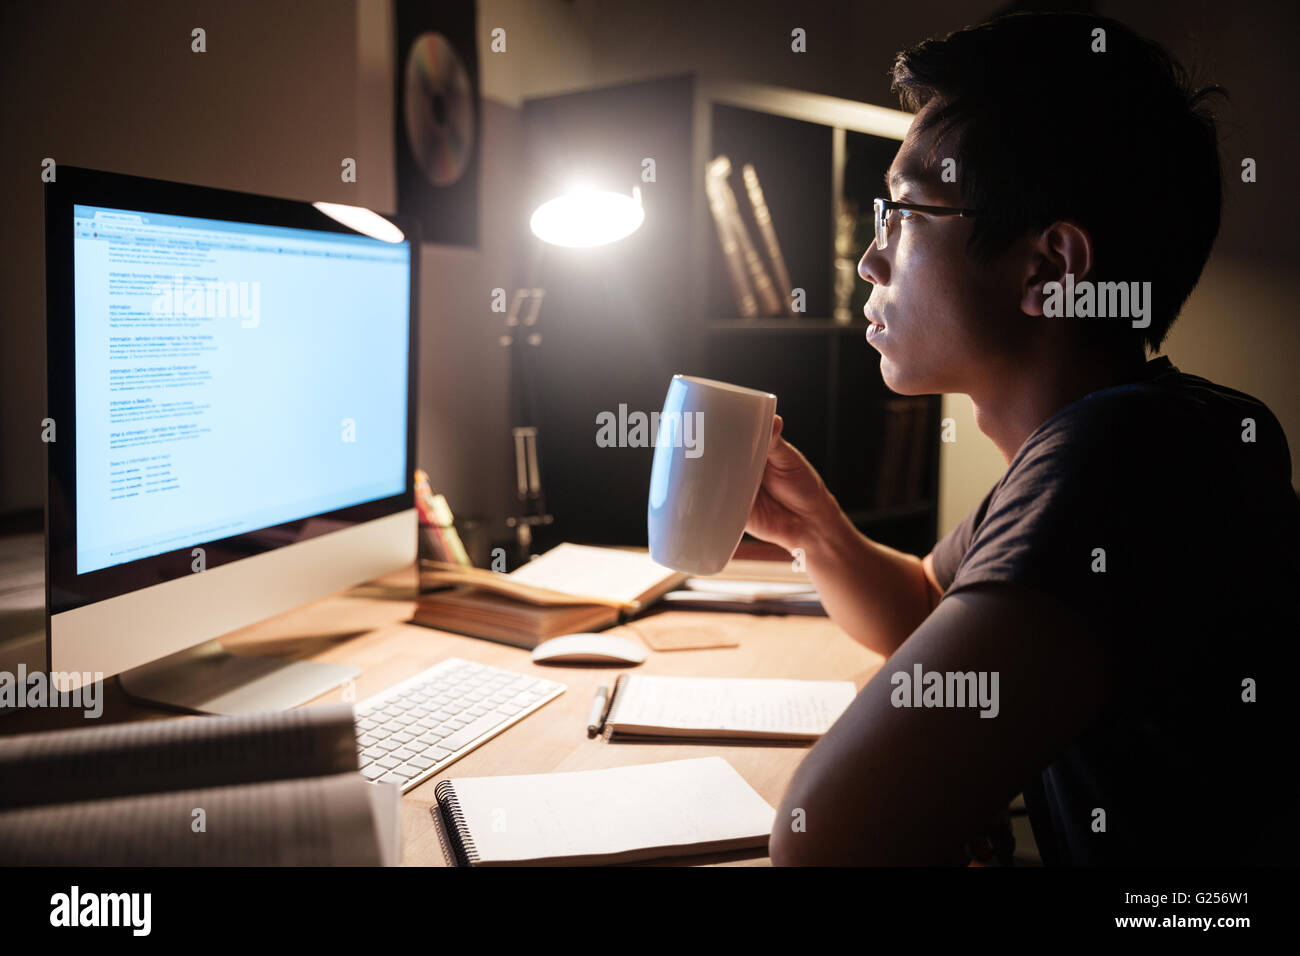 Profile of handsome asian young man studying with computer and drinking tea in dark room - Stock Image